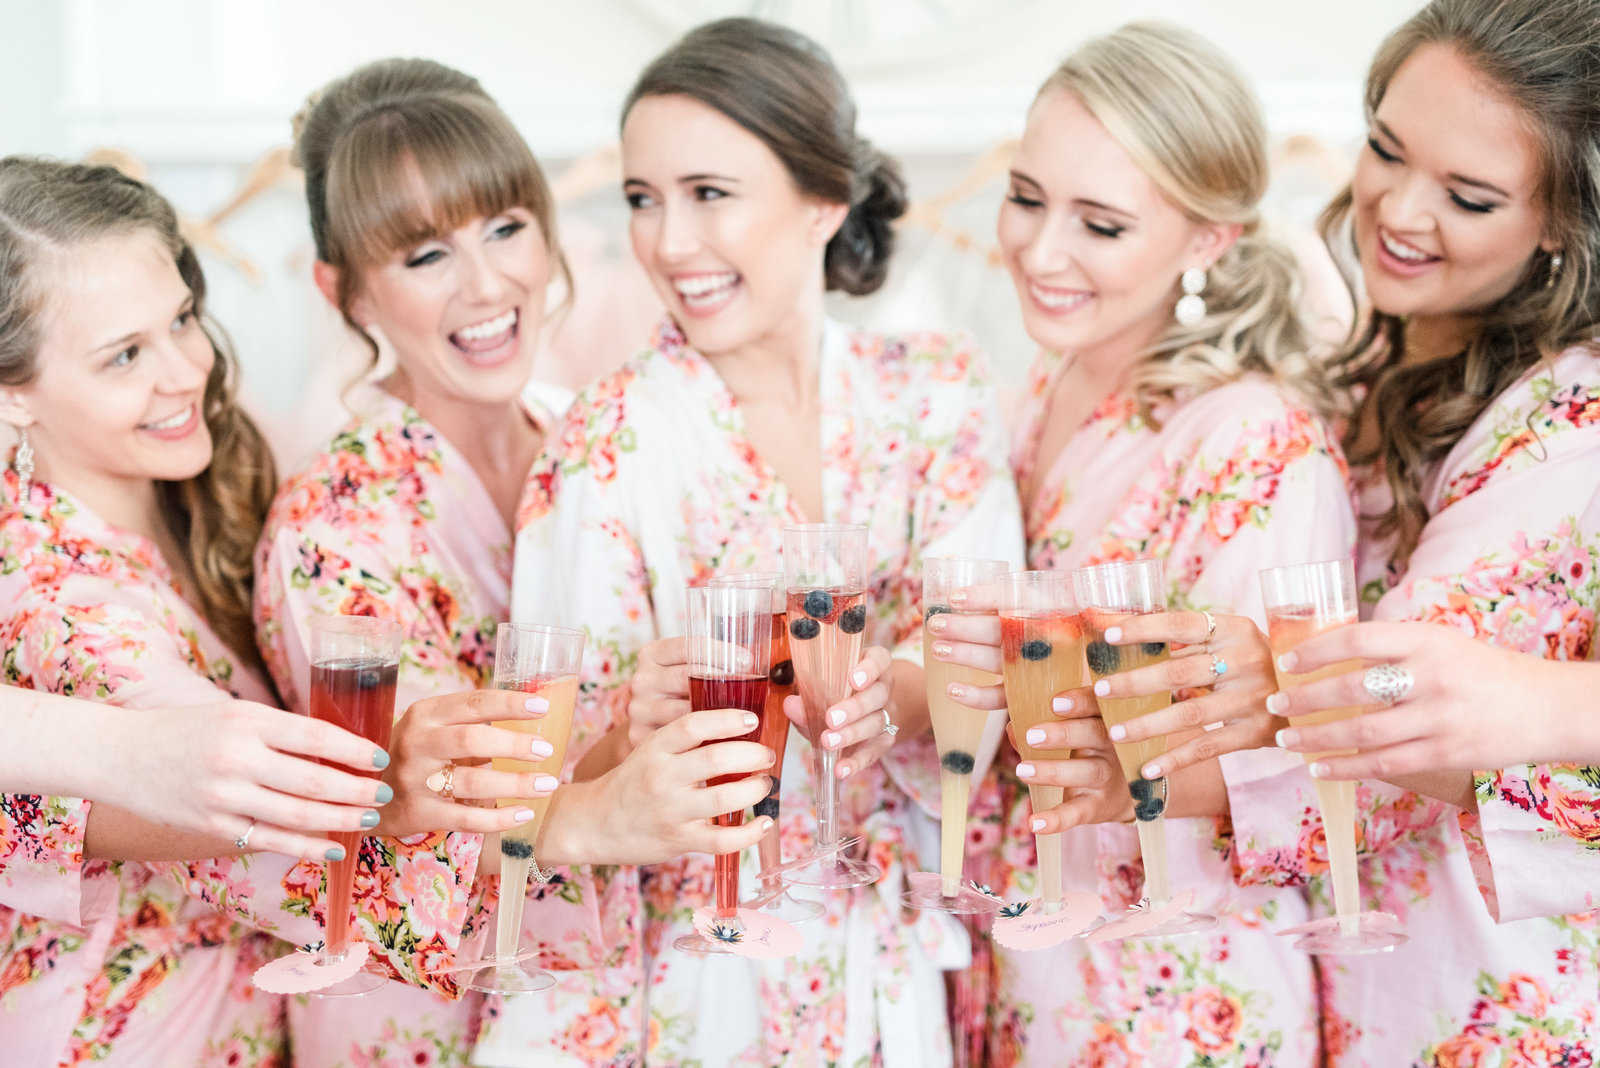 hampton-roads-virginia-wedding-blush-bridesmaids-dresses-photo121